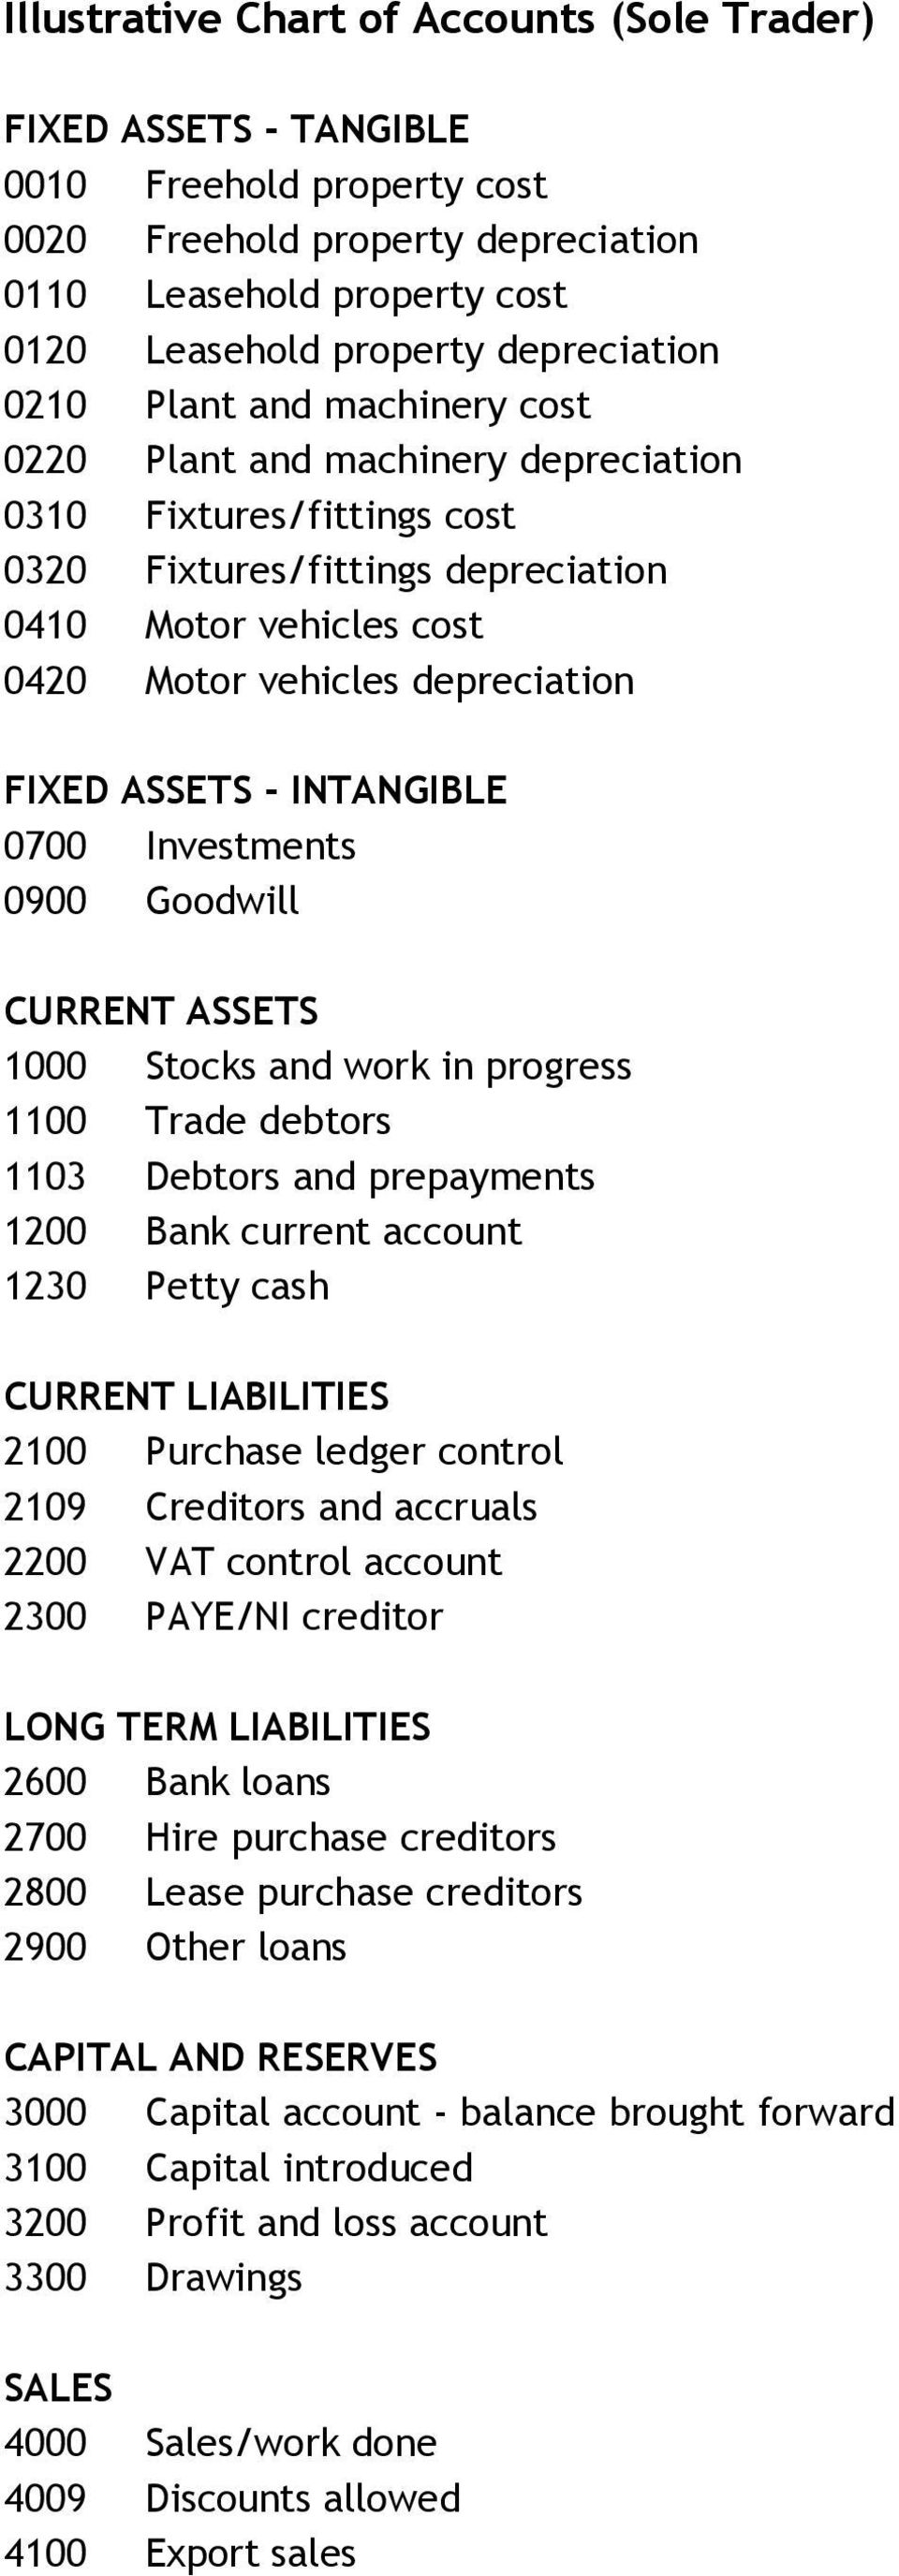 ASSETS - INTANGIBLE 0700 Investments 0900 Goodwill CURRENT ASSETS 1000 Stocks and work in progress 1100 Trade debtors 1103 Debtors and prepayments 1200 Bank current account 1230 Petty cash CURRENT